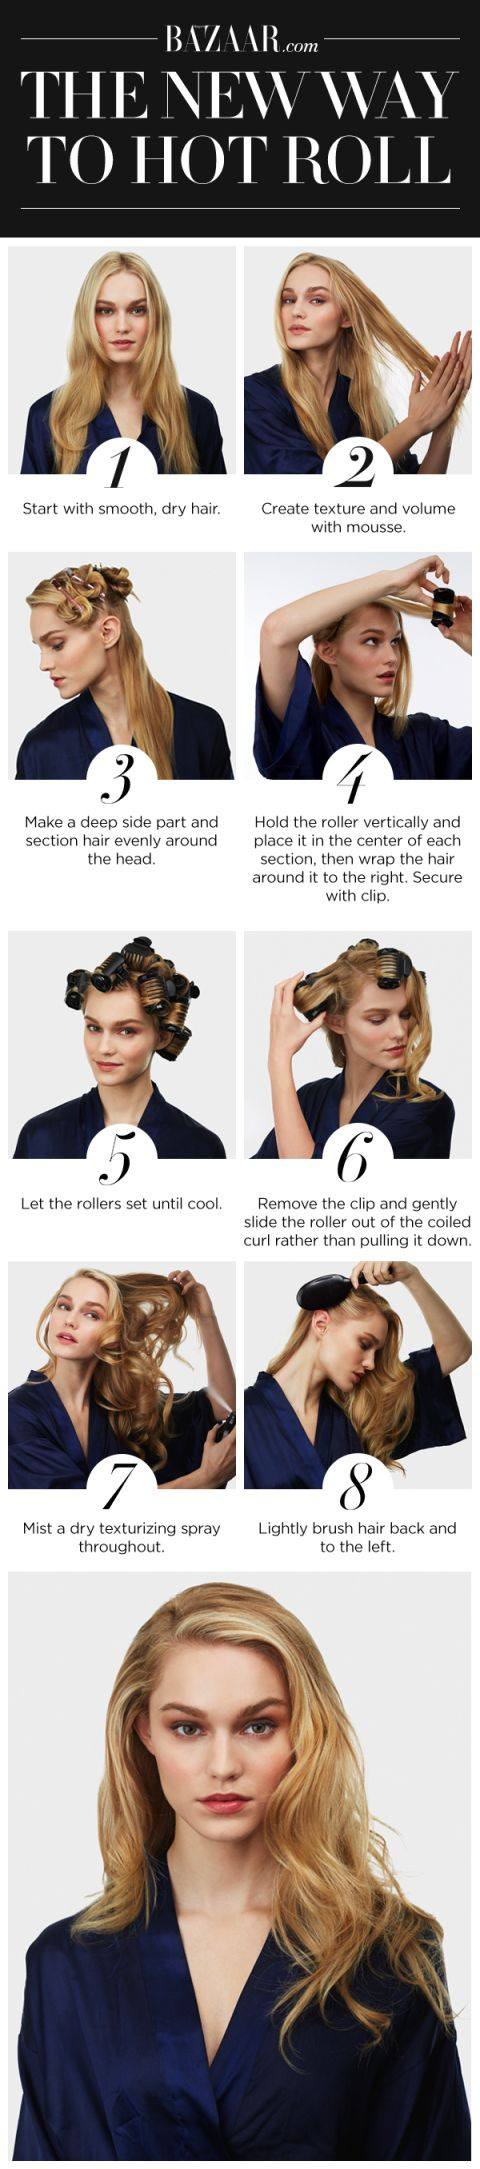 The New Way To Use Hot Rollers A Step By Step Guide To Curling Your Hair With Hot Rollers